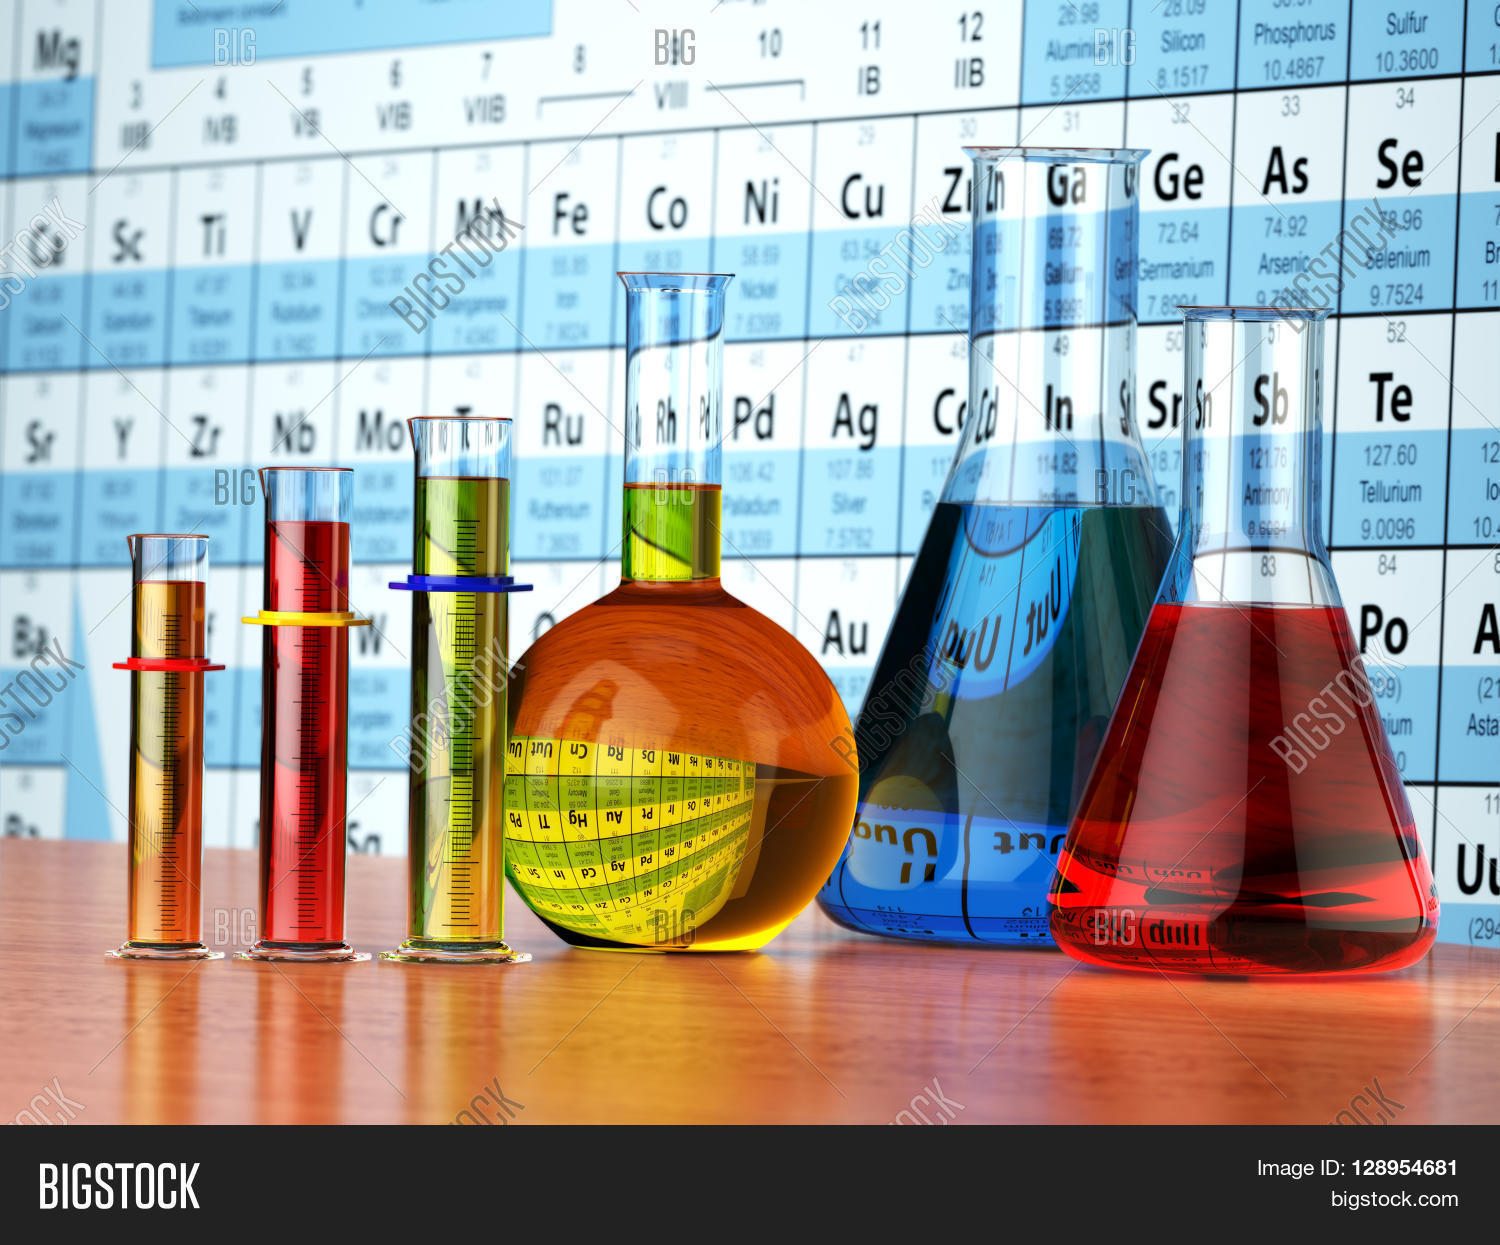 Where are the liquids on the periodic table images periodic science chemistry concept image photo bigstock laboratory test tubes and flasks with colored liquids on the gamestrikefo Image collections